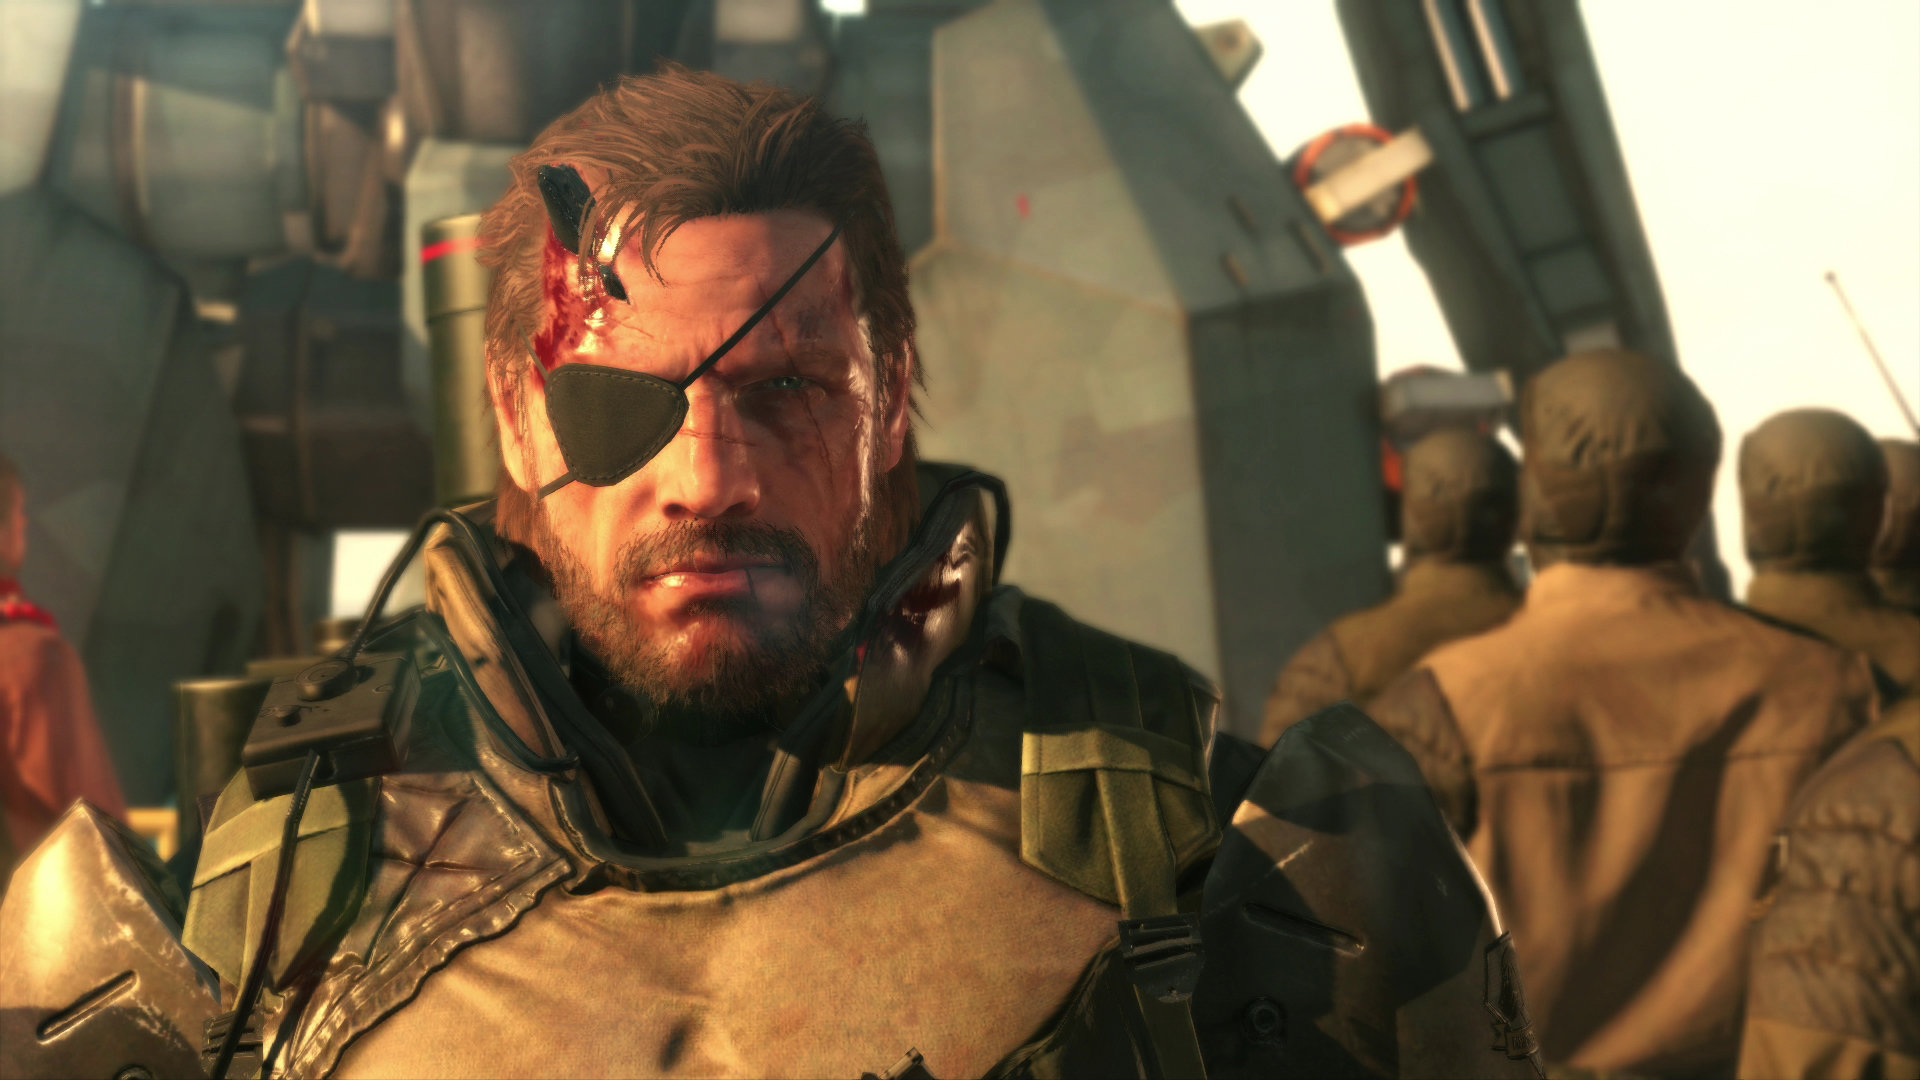 Big Boss Mgs Wallpapers Hd For Desktop Backgrounds